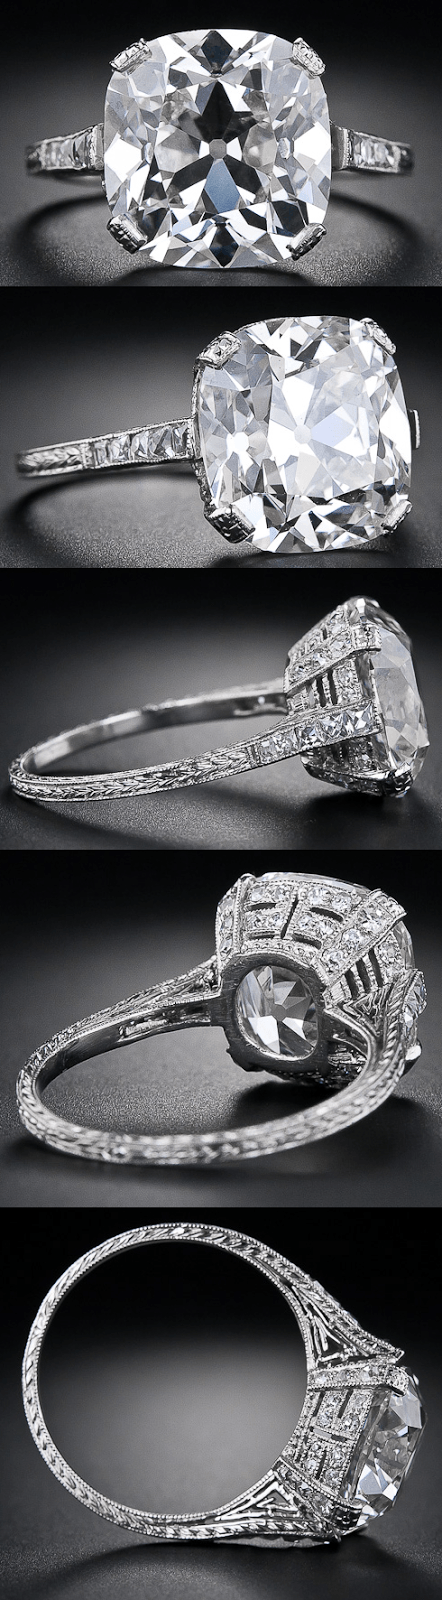 6.48 carat antique cushion cut diamond ring. | Diamonds in the Library